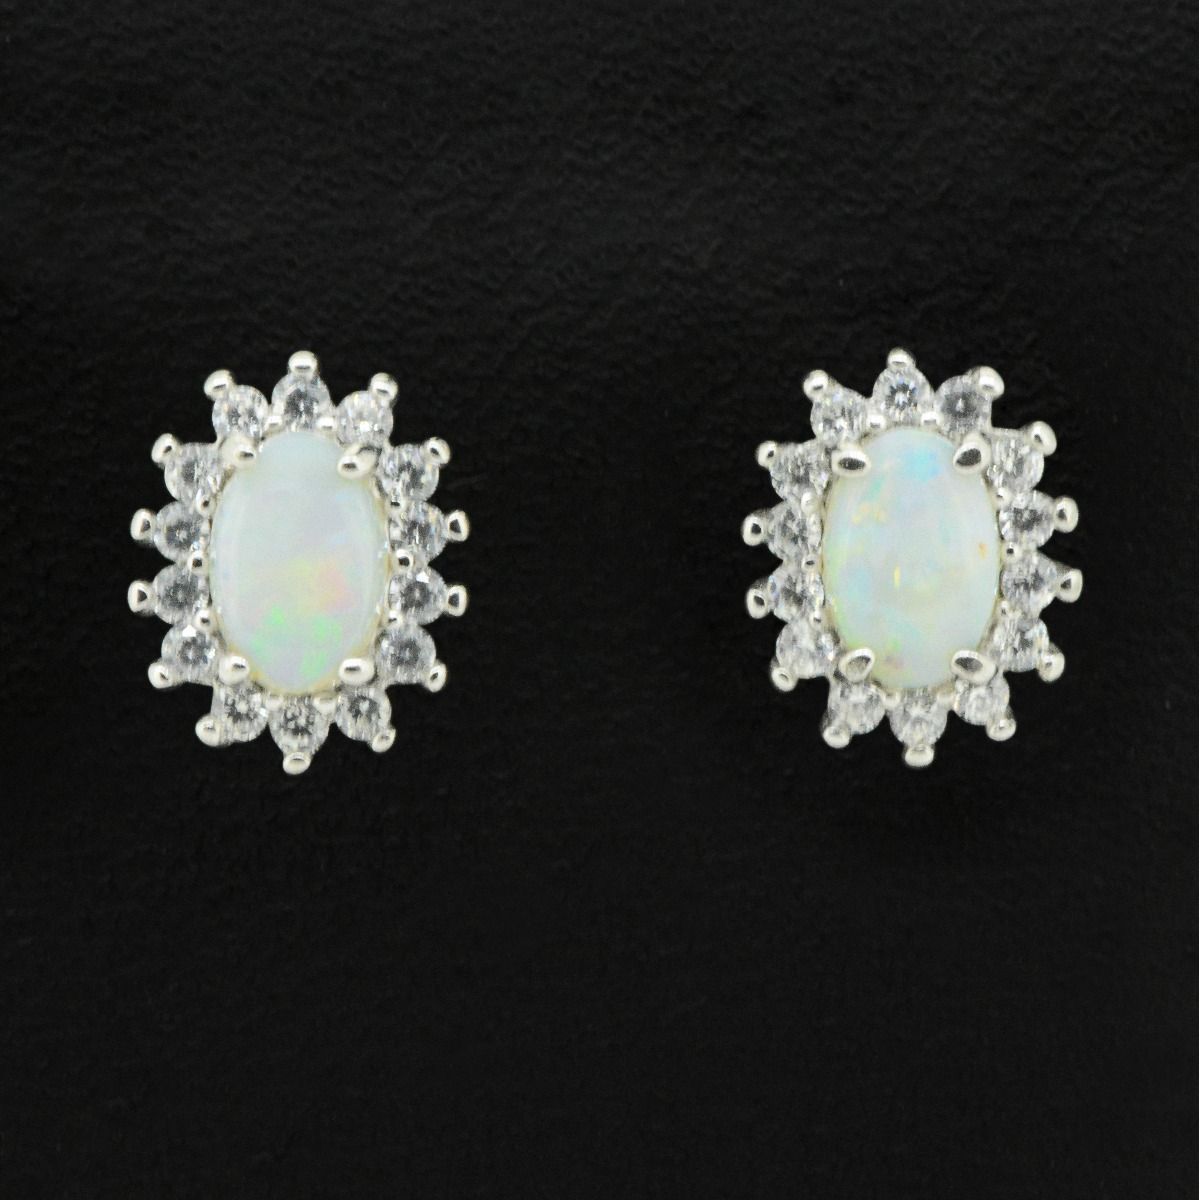 Sterling Silver Solid Opal Earrings With Crystals